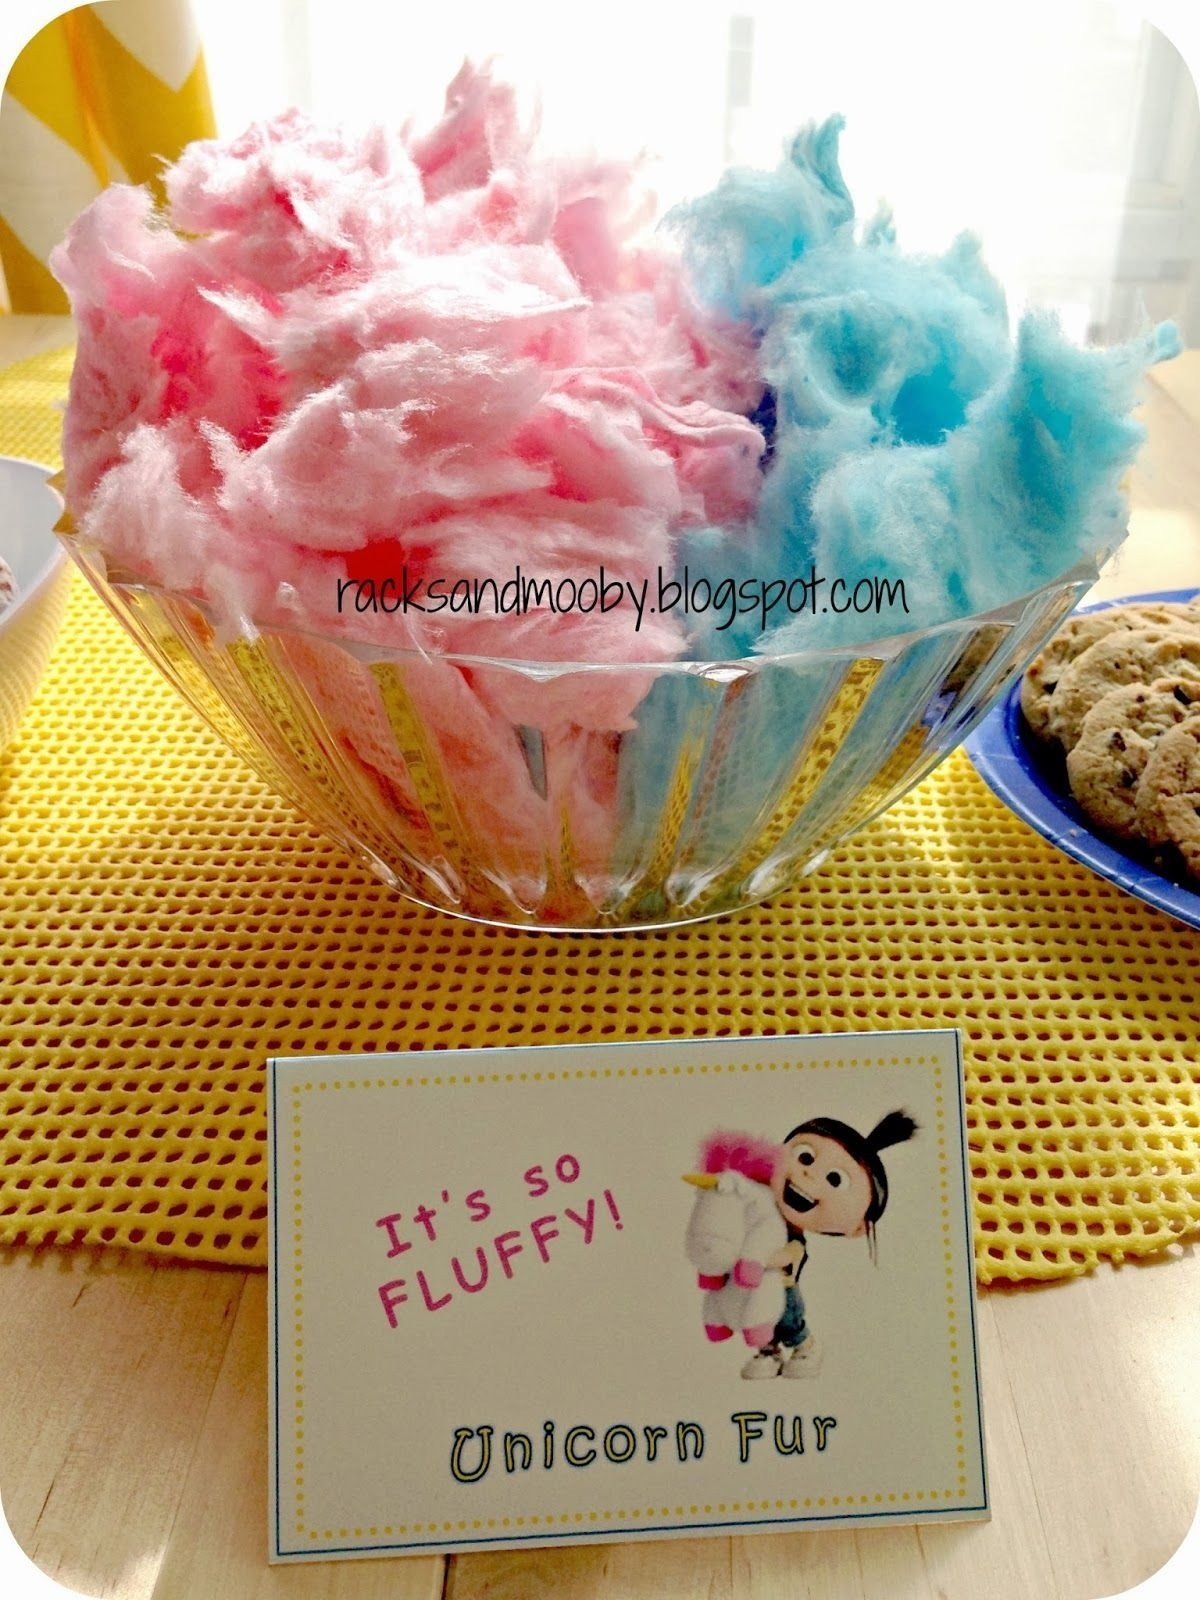 10 Stylish Despicable Me Party Food Ideas minion party snacks despicable me party fluffy unicorn fur 2020